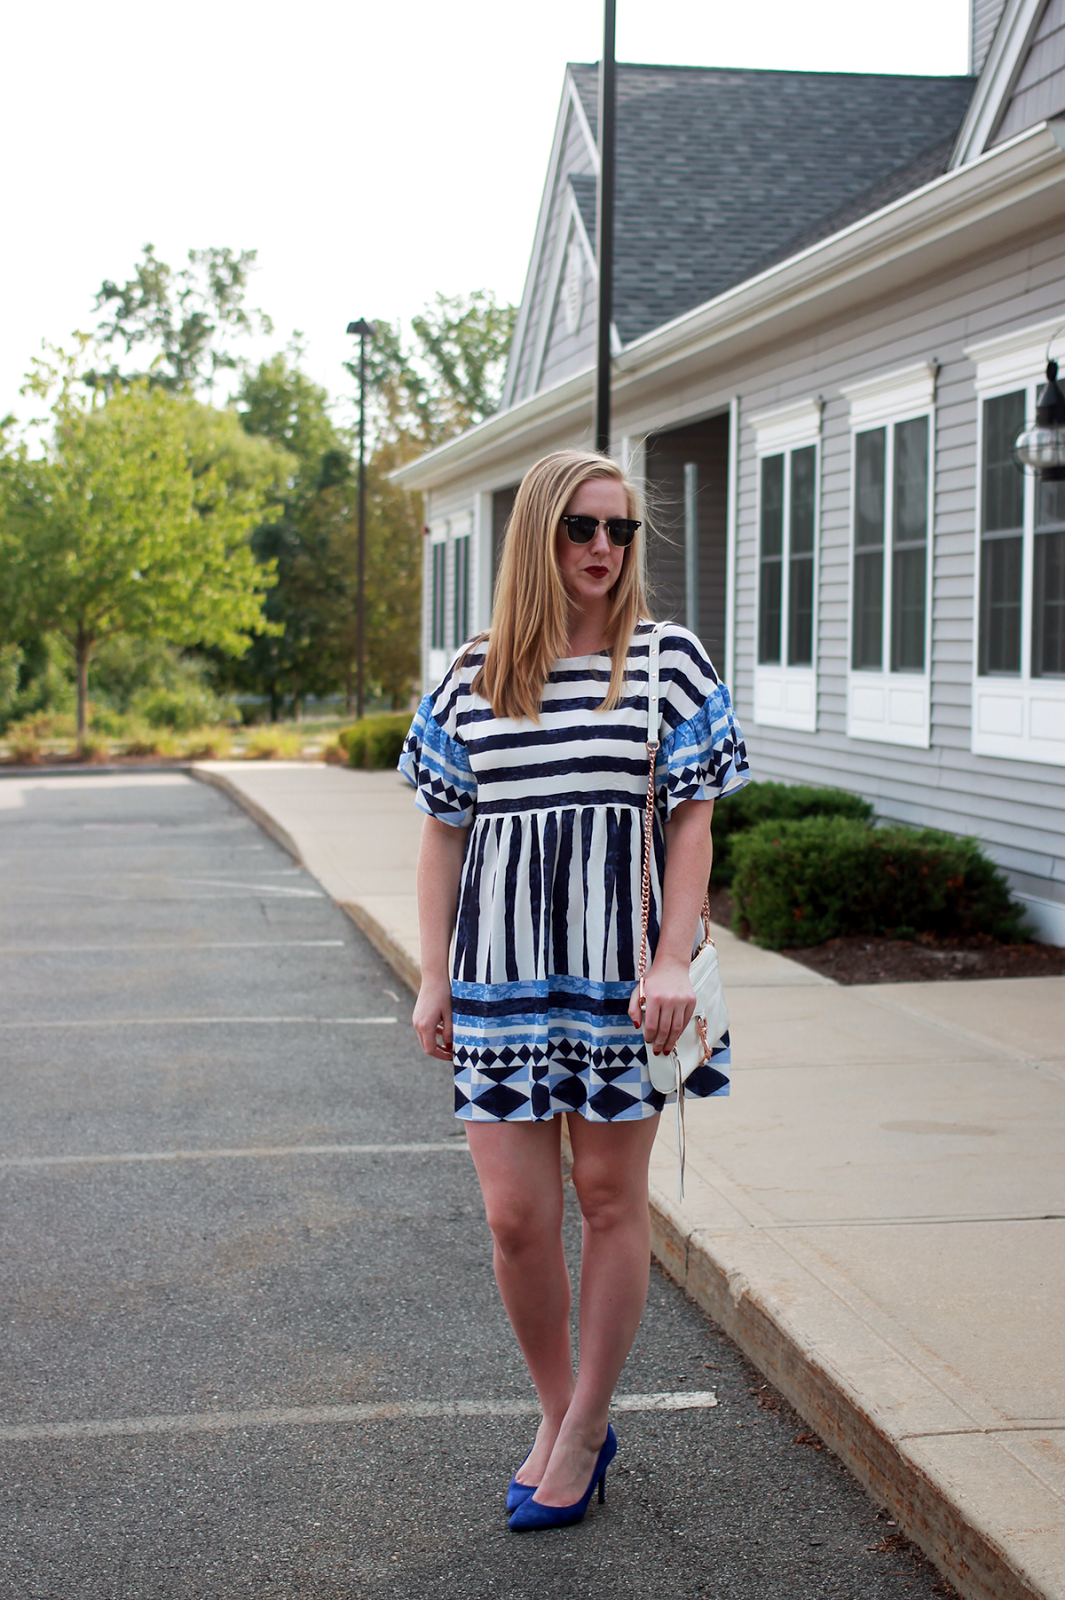 boston fashion influencer; boston style instagram; boston style blogger; shein boston collaboration; shein collaboration instagram; print ruffle shift dress;